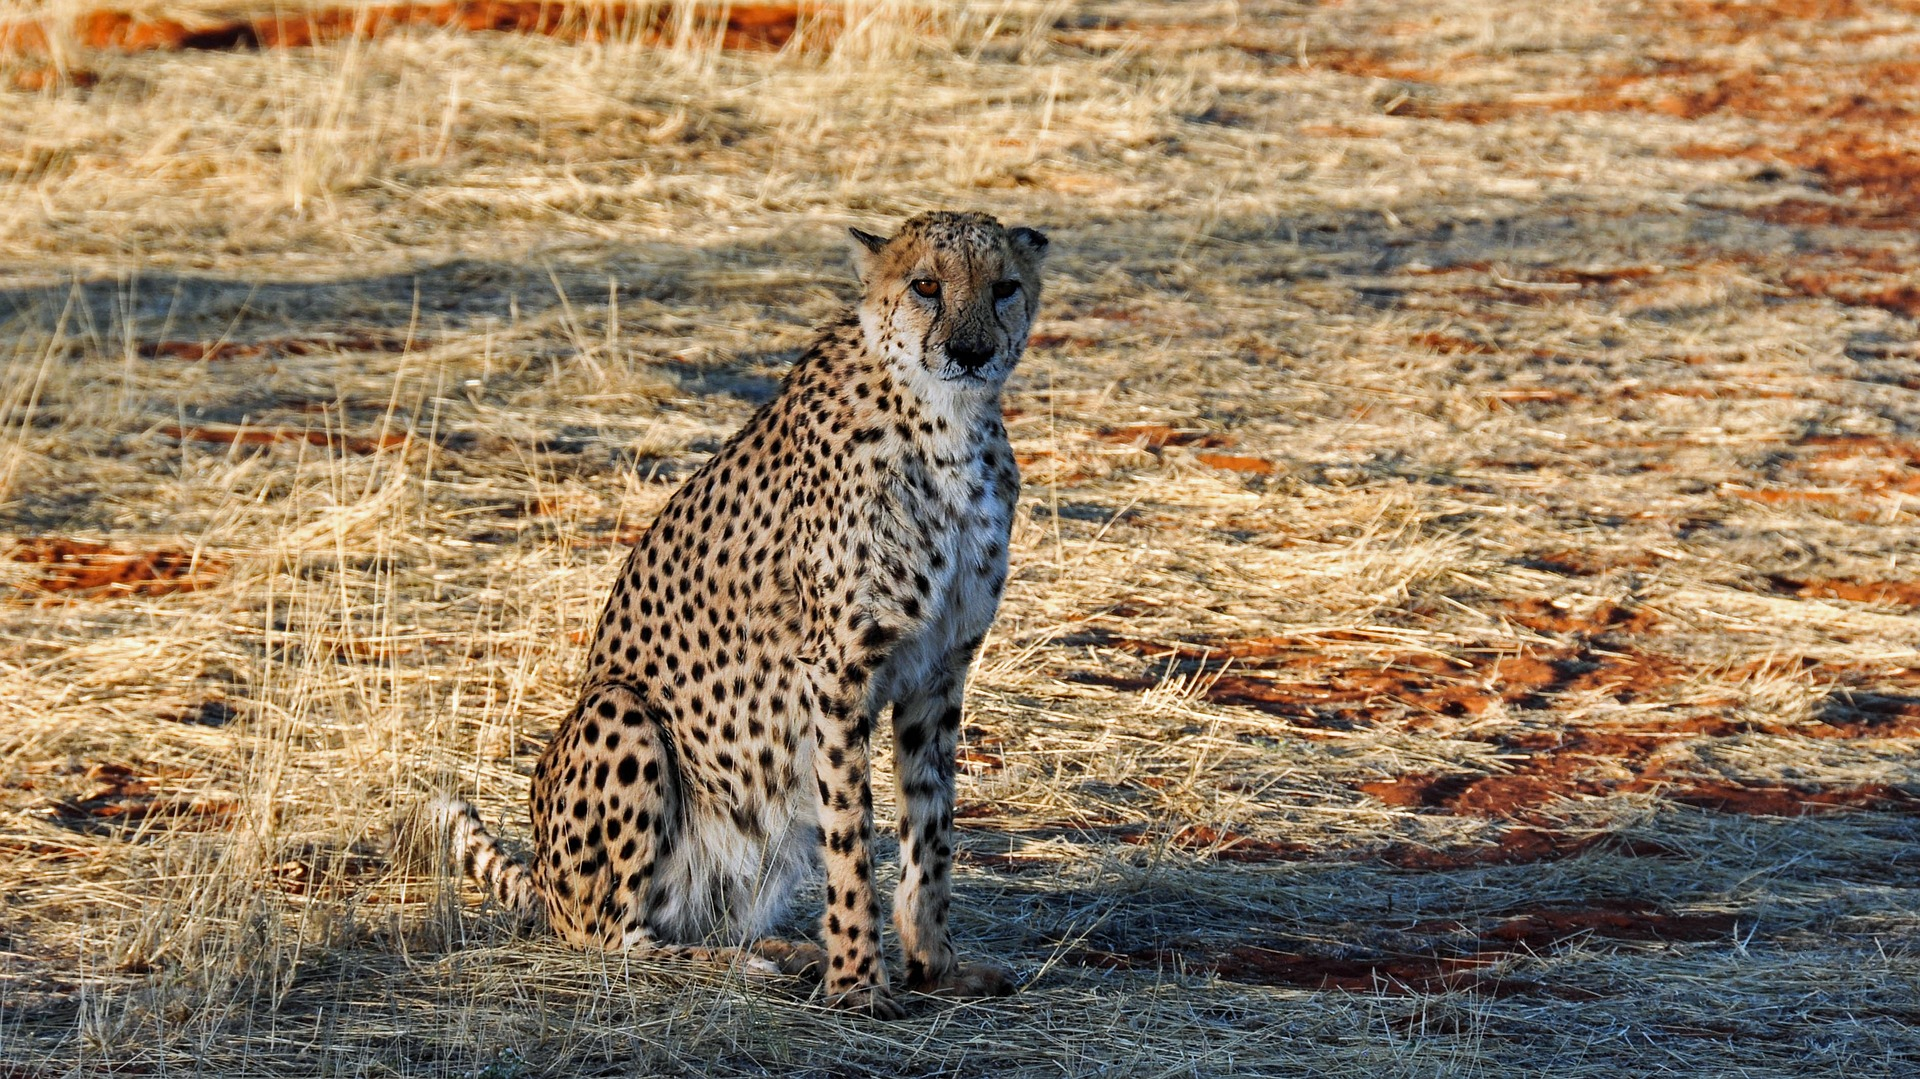 A cheetah in Namibia